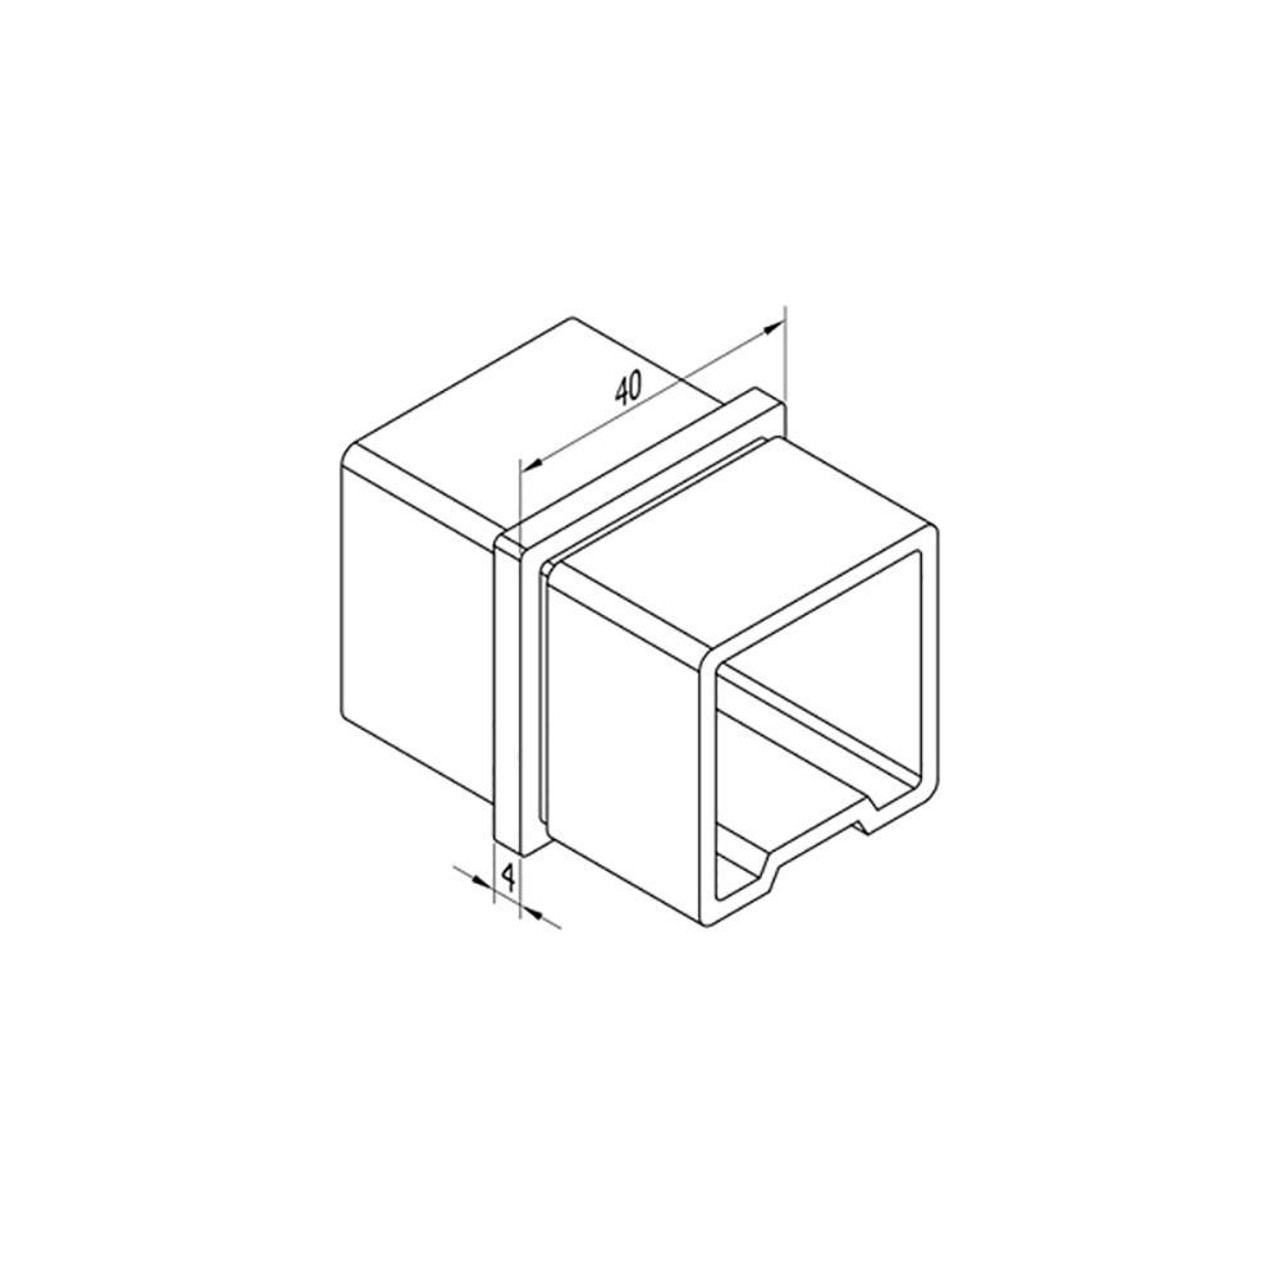 Inline Connector for Square Rail – 40 x 40 x 2 mm (AX20.008.112.A.SP) CADD